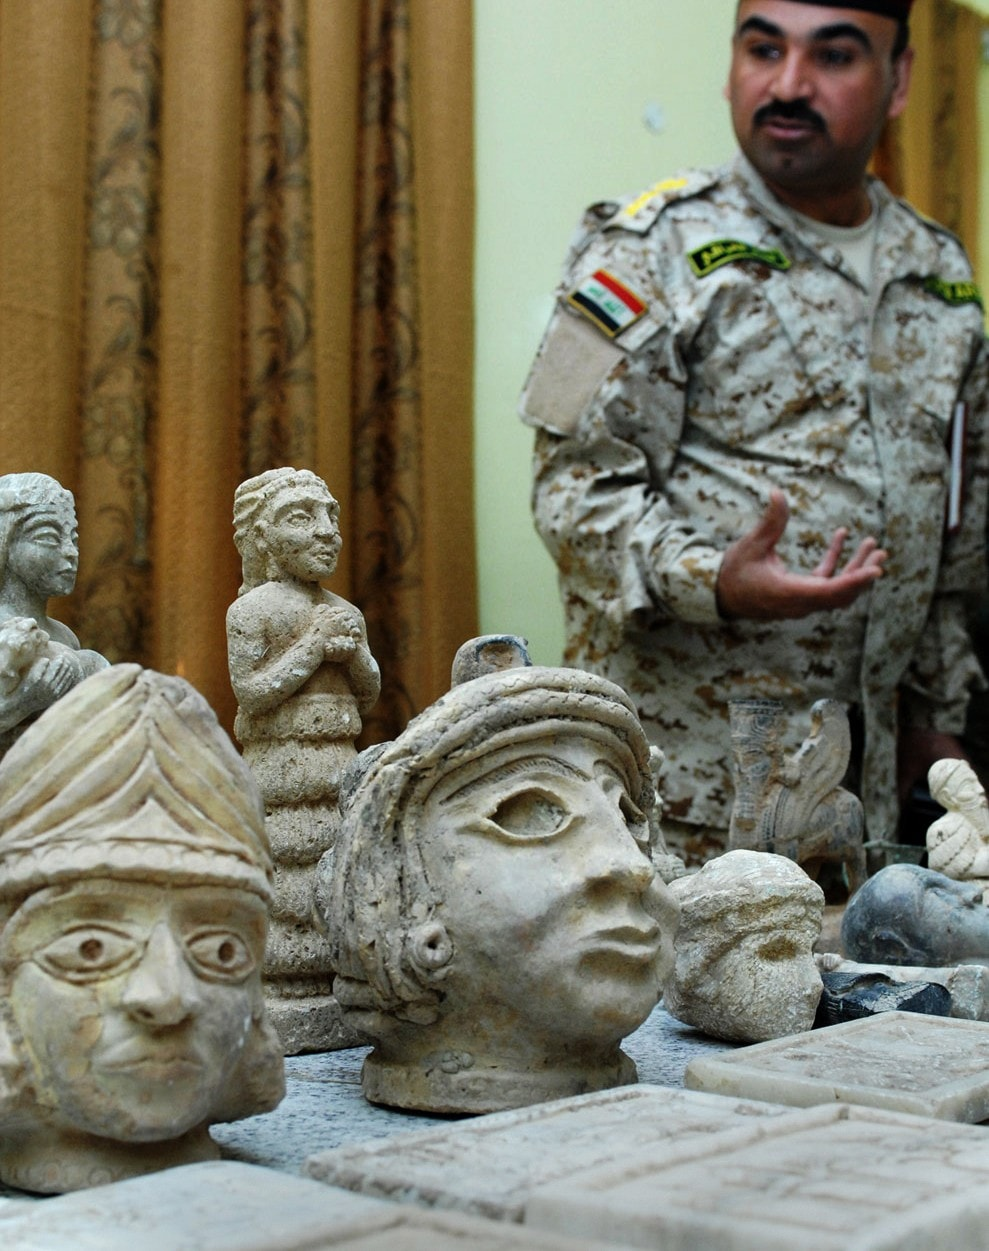 Iraqi colonel ali sabah standing next to artefacts - stone heads - retrieved after the looting